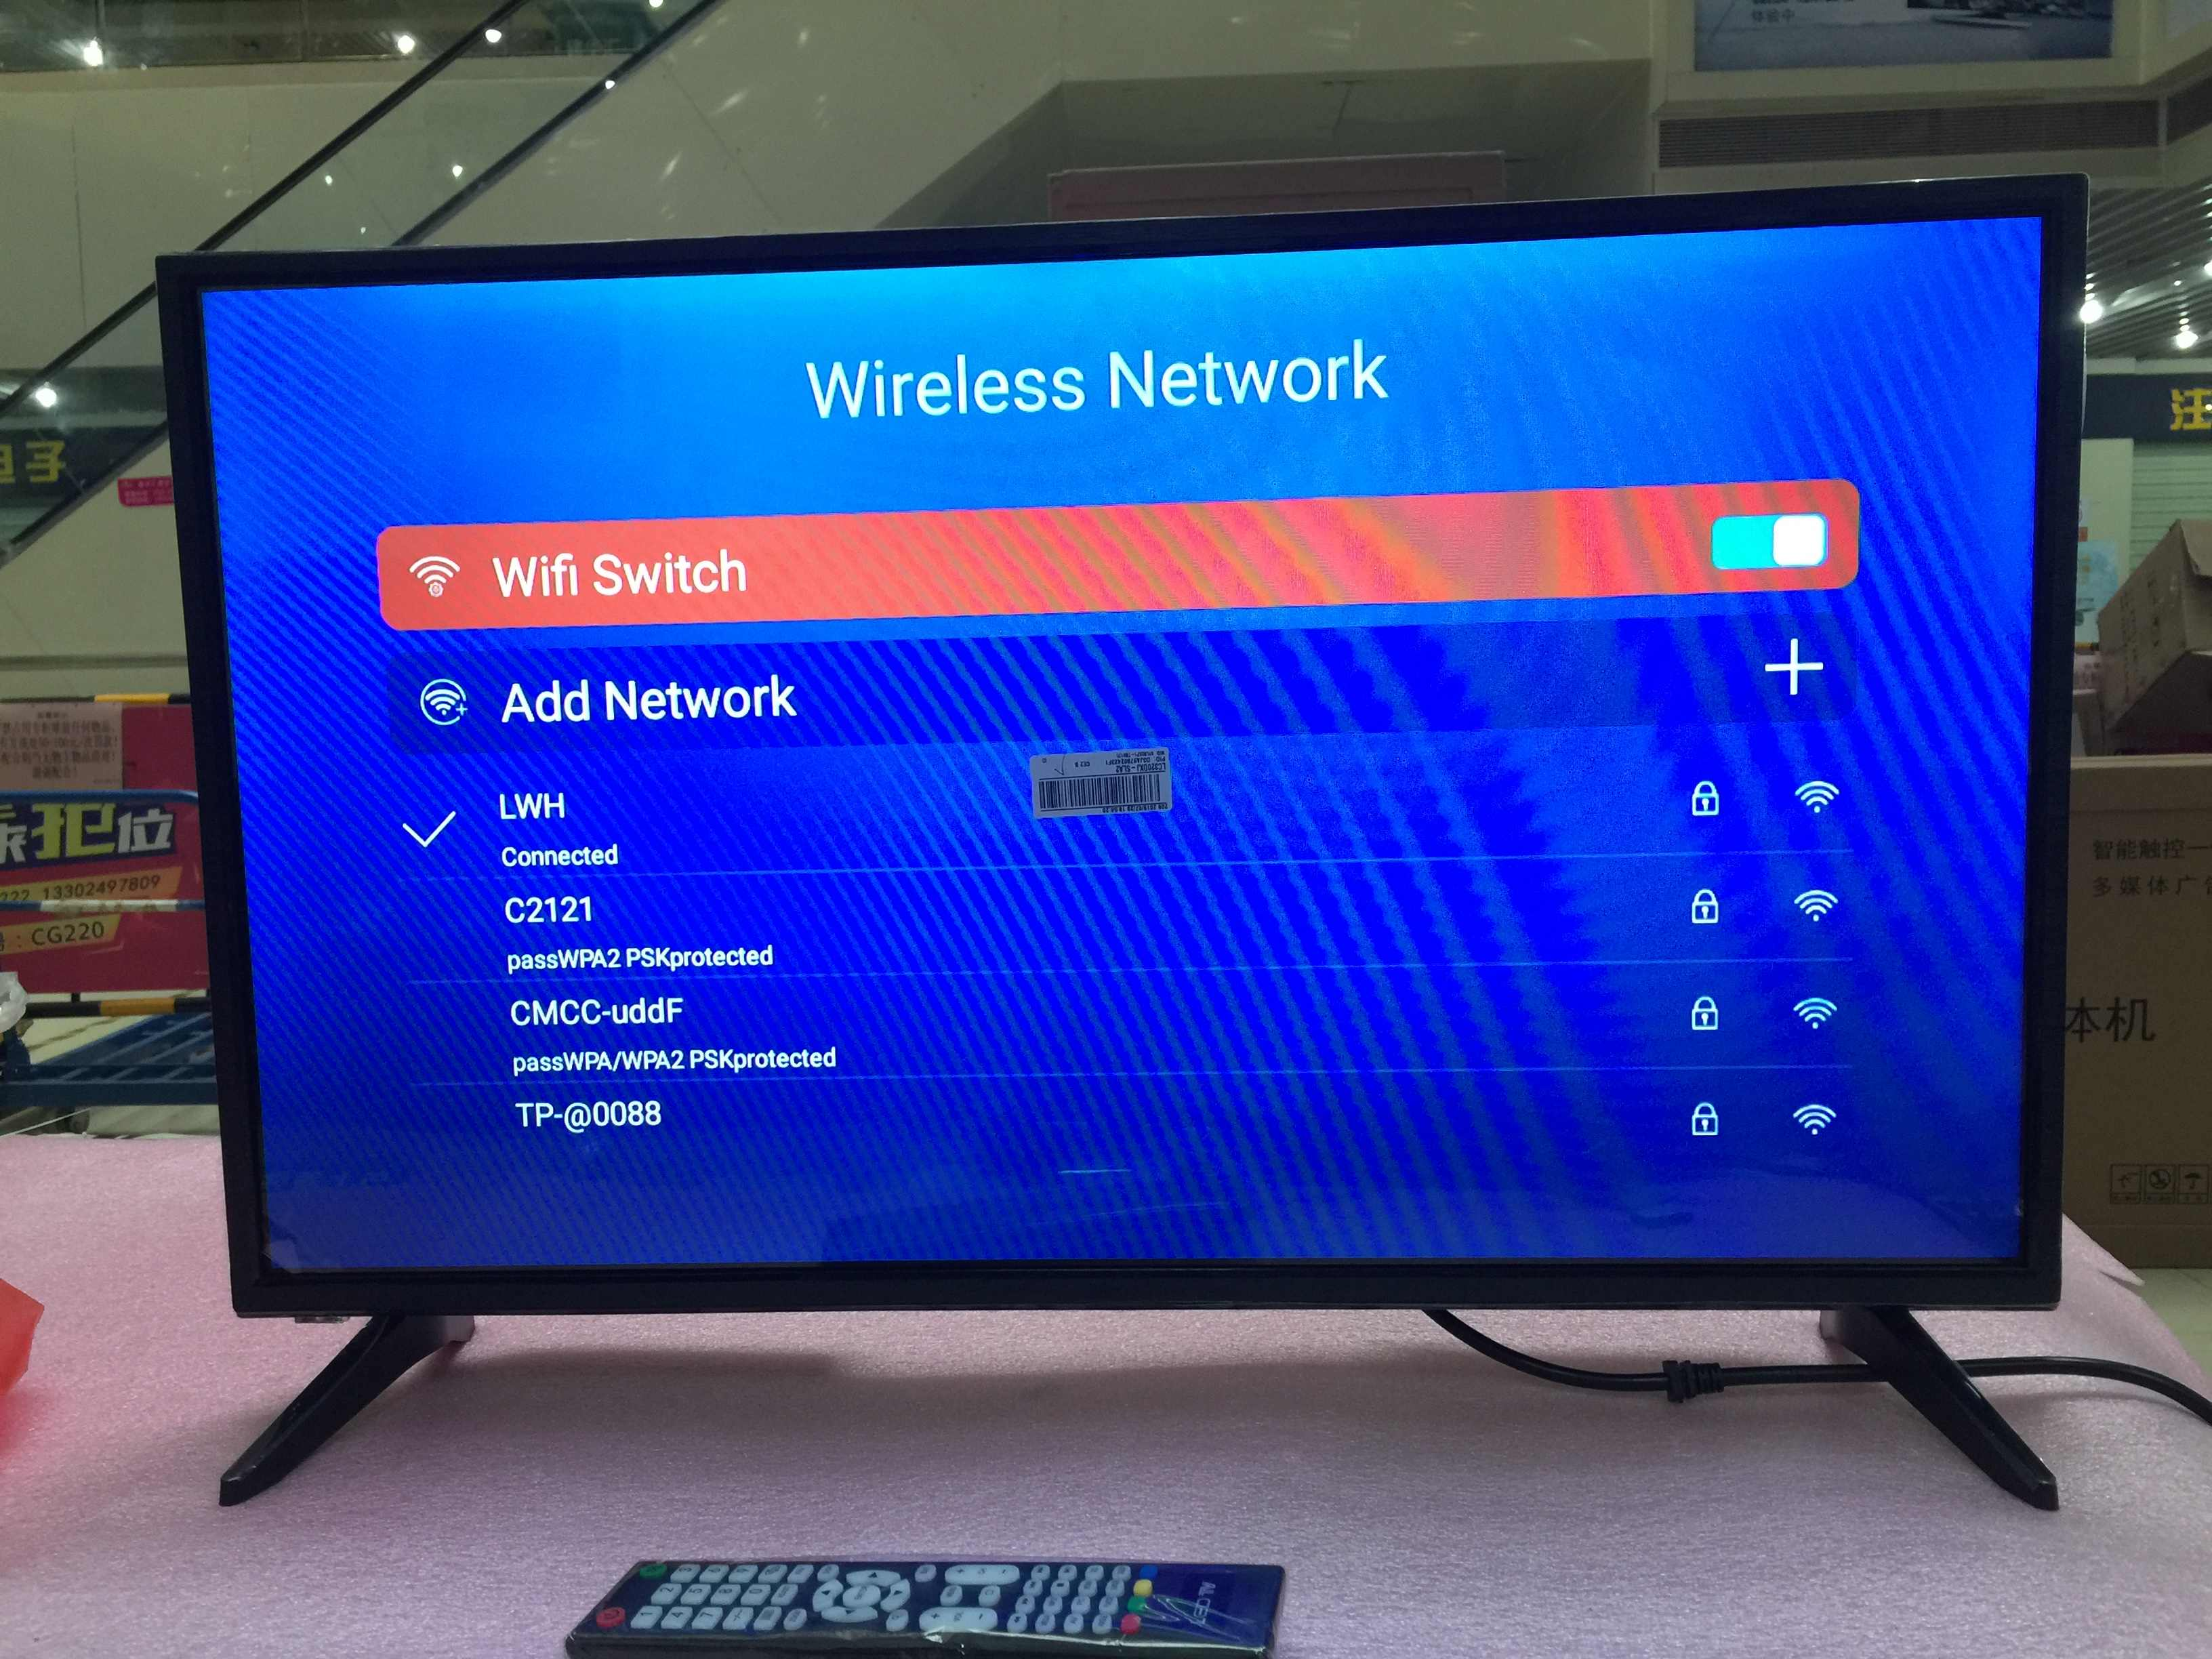 IpTV 32 inch Wifi Android OS 7.1.1 Ram 1GB ROM 4GB internet led televisie tv